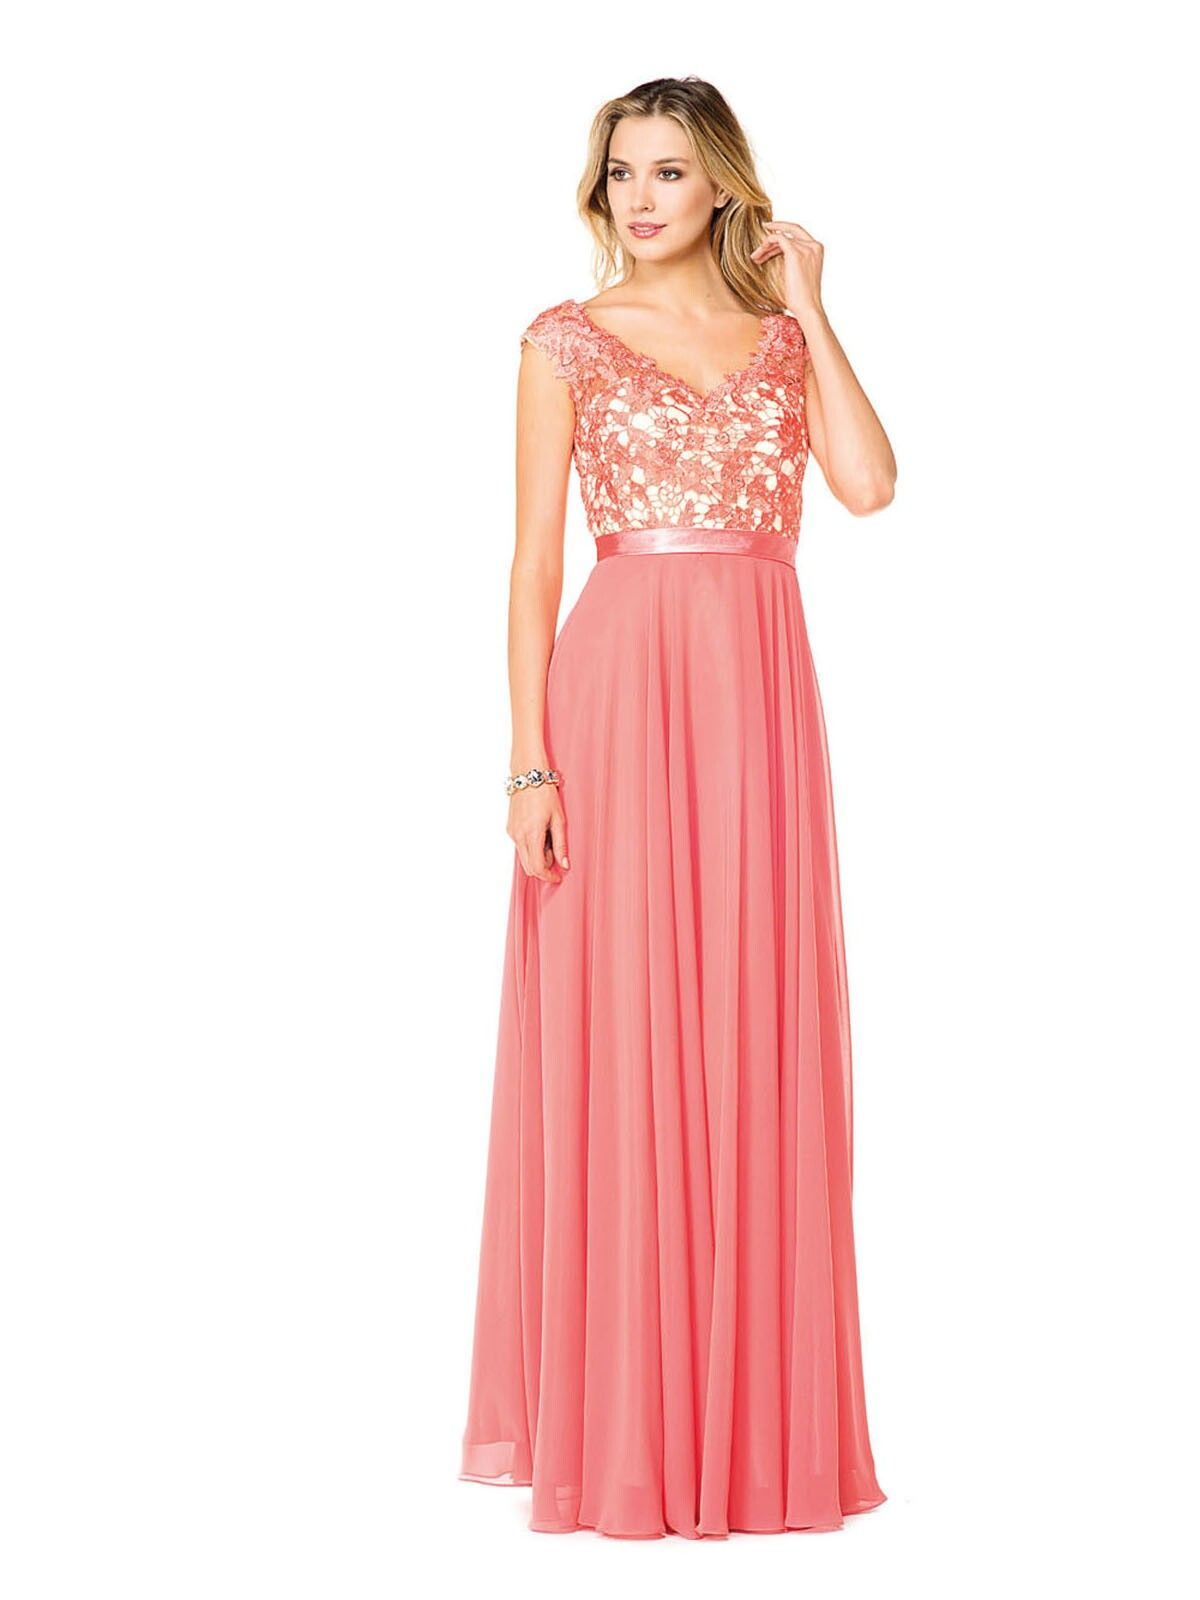 Glow by Colors G318, size 24, coral, In store only Bride N Groom ...